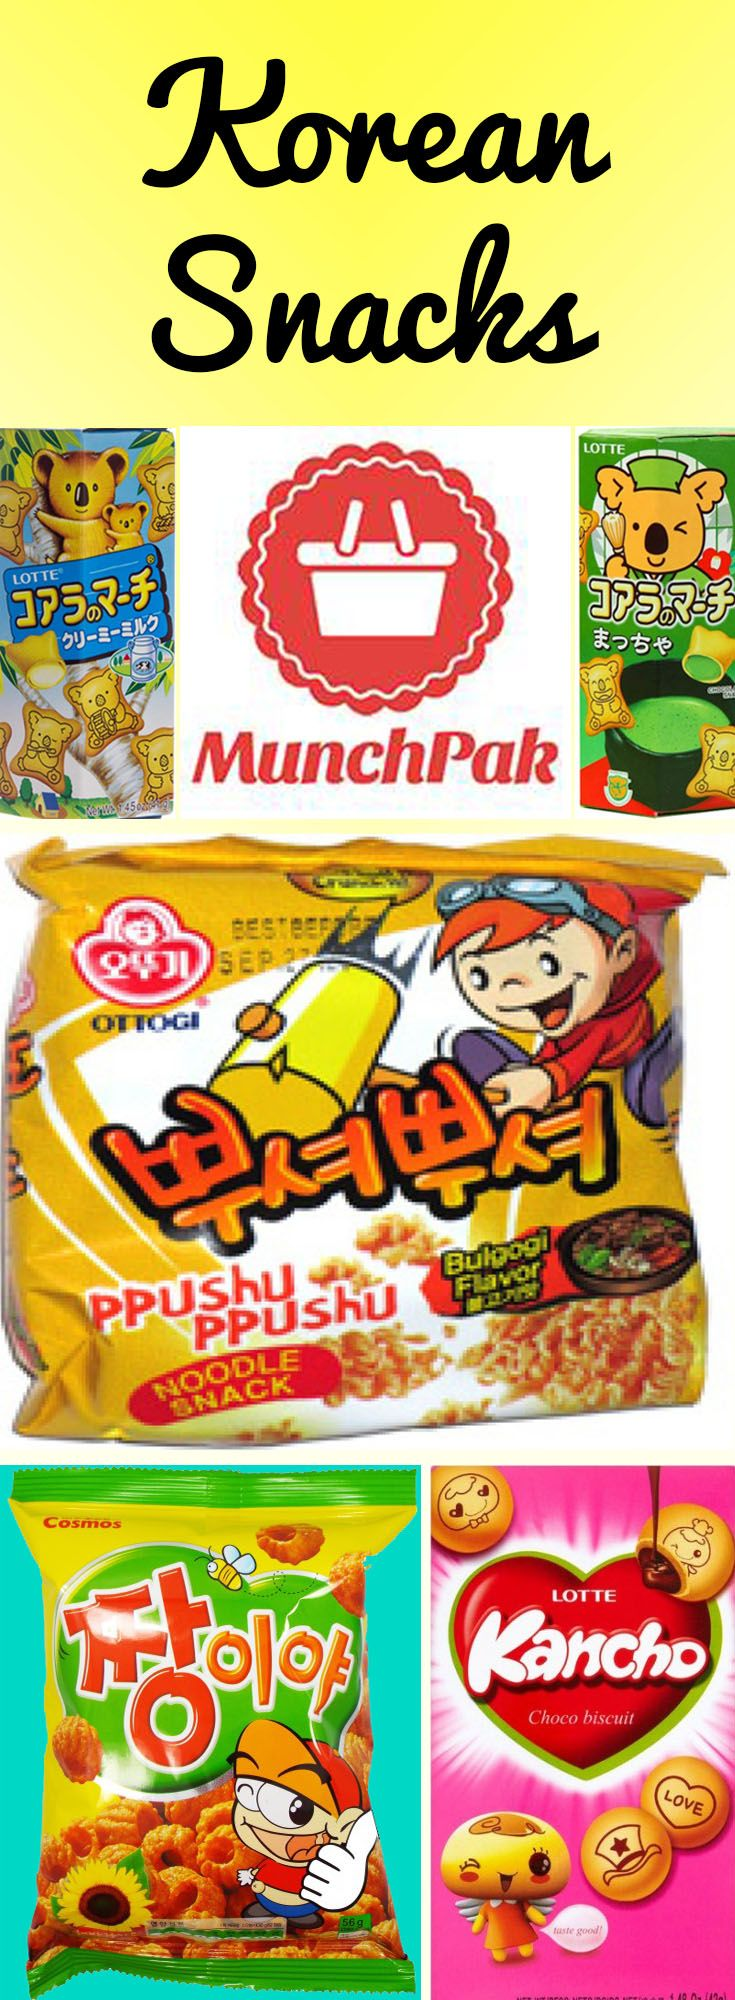 Explore new flavors from Korea with a Munchpak subscription box. Korean snacks, Korean snack box, Korean snack boxes, Korean candy boxes, Korean subscription box Ppushu Ppushu, Lotte Koala Milk Cookie King, Koala's March Matcha Green Tea Cookies, Lotte Kancho, Cosmos Zhang Snack